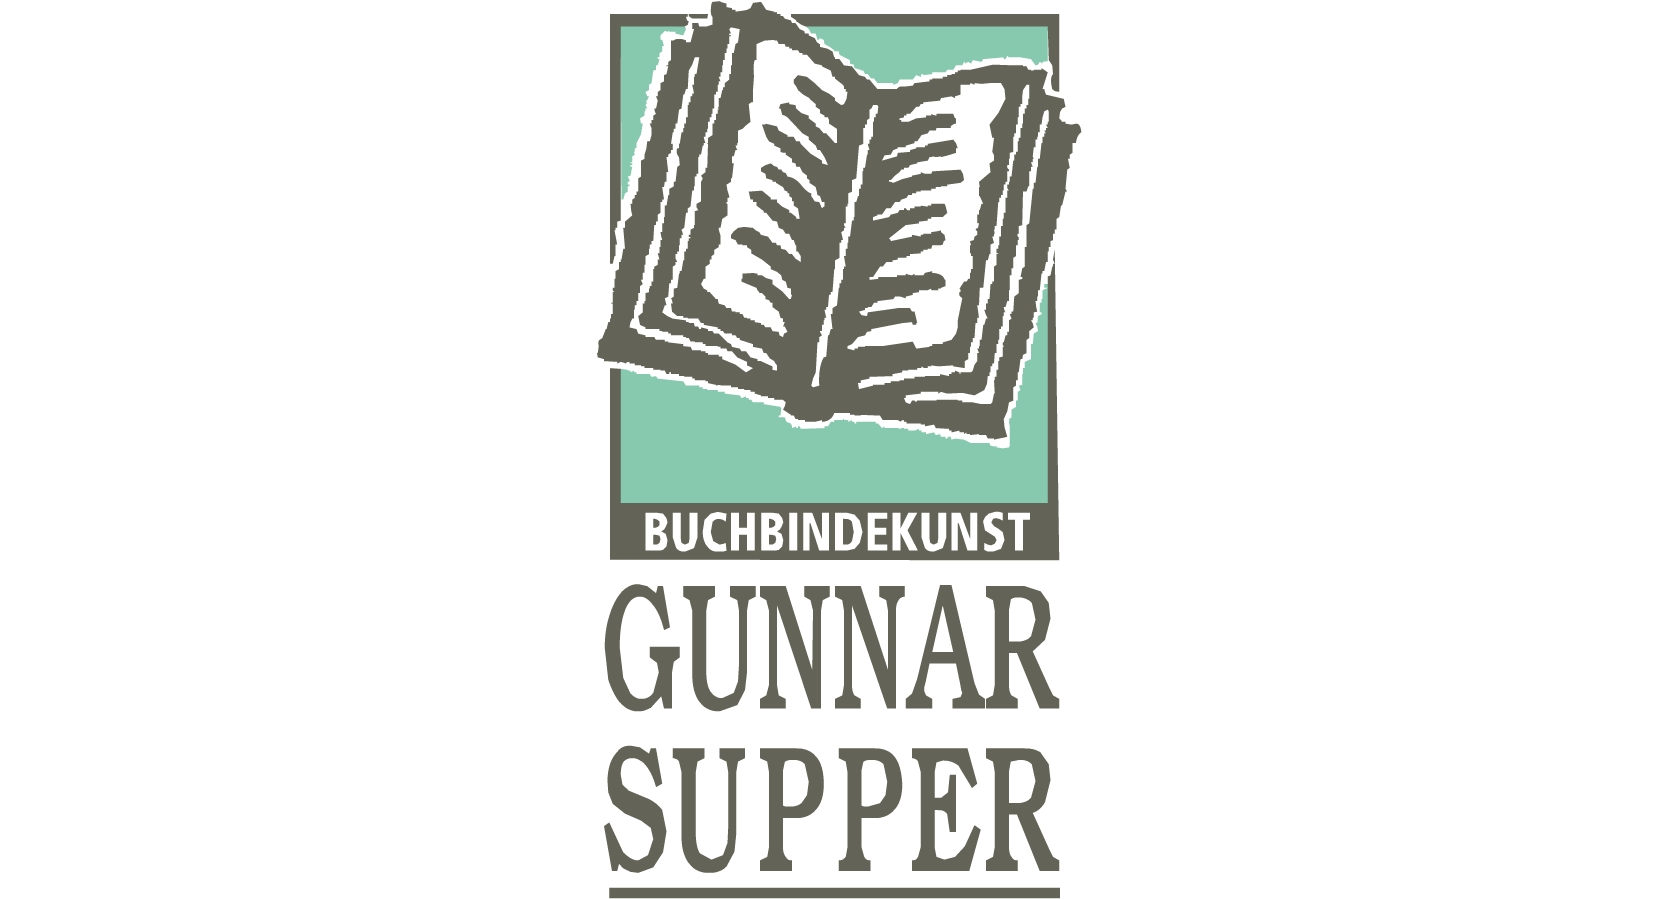 Gunnar Supper